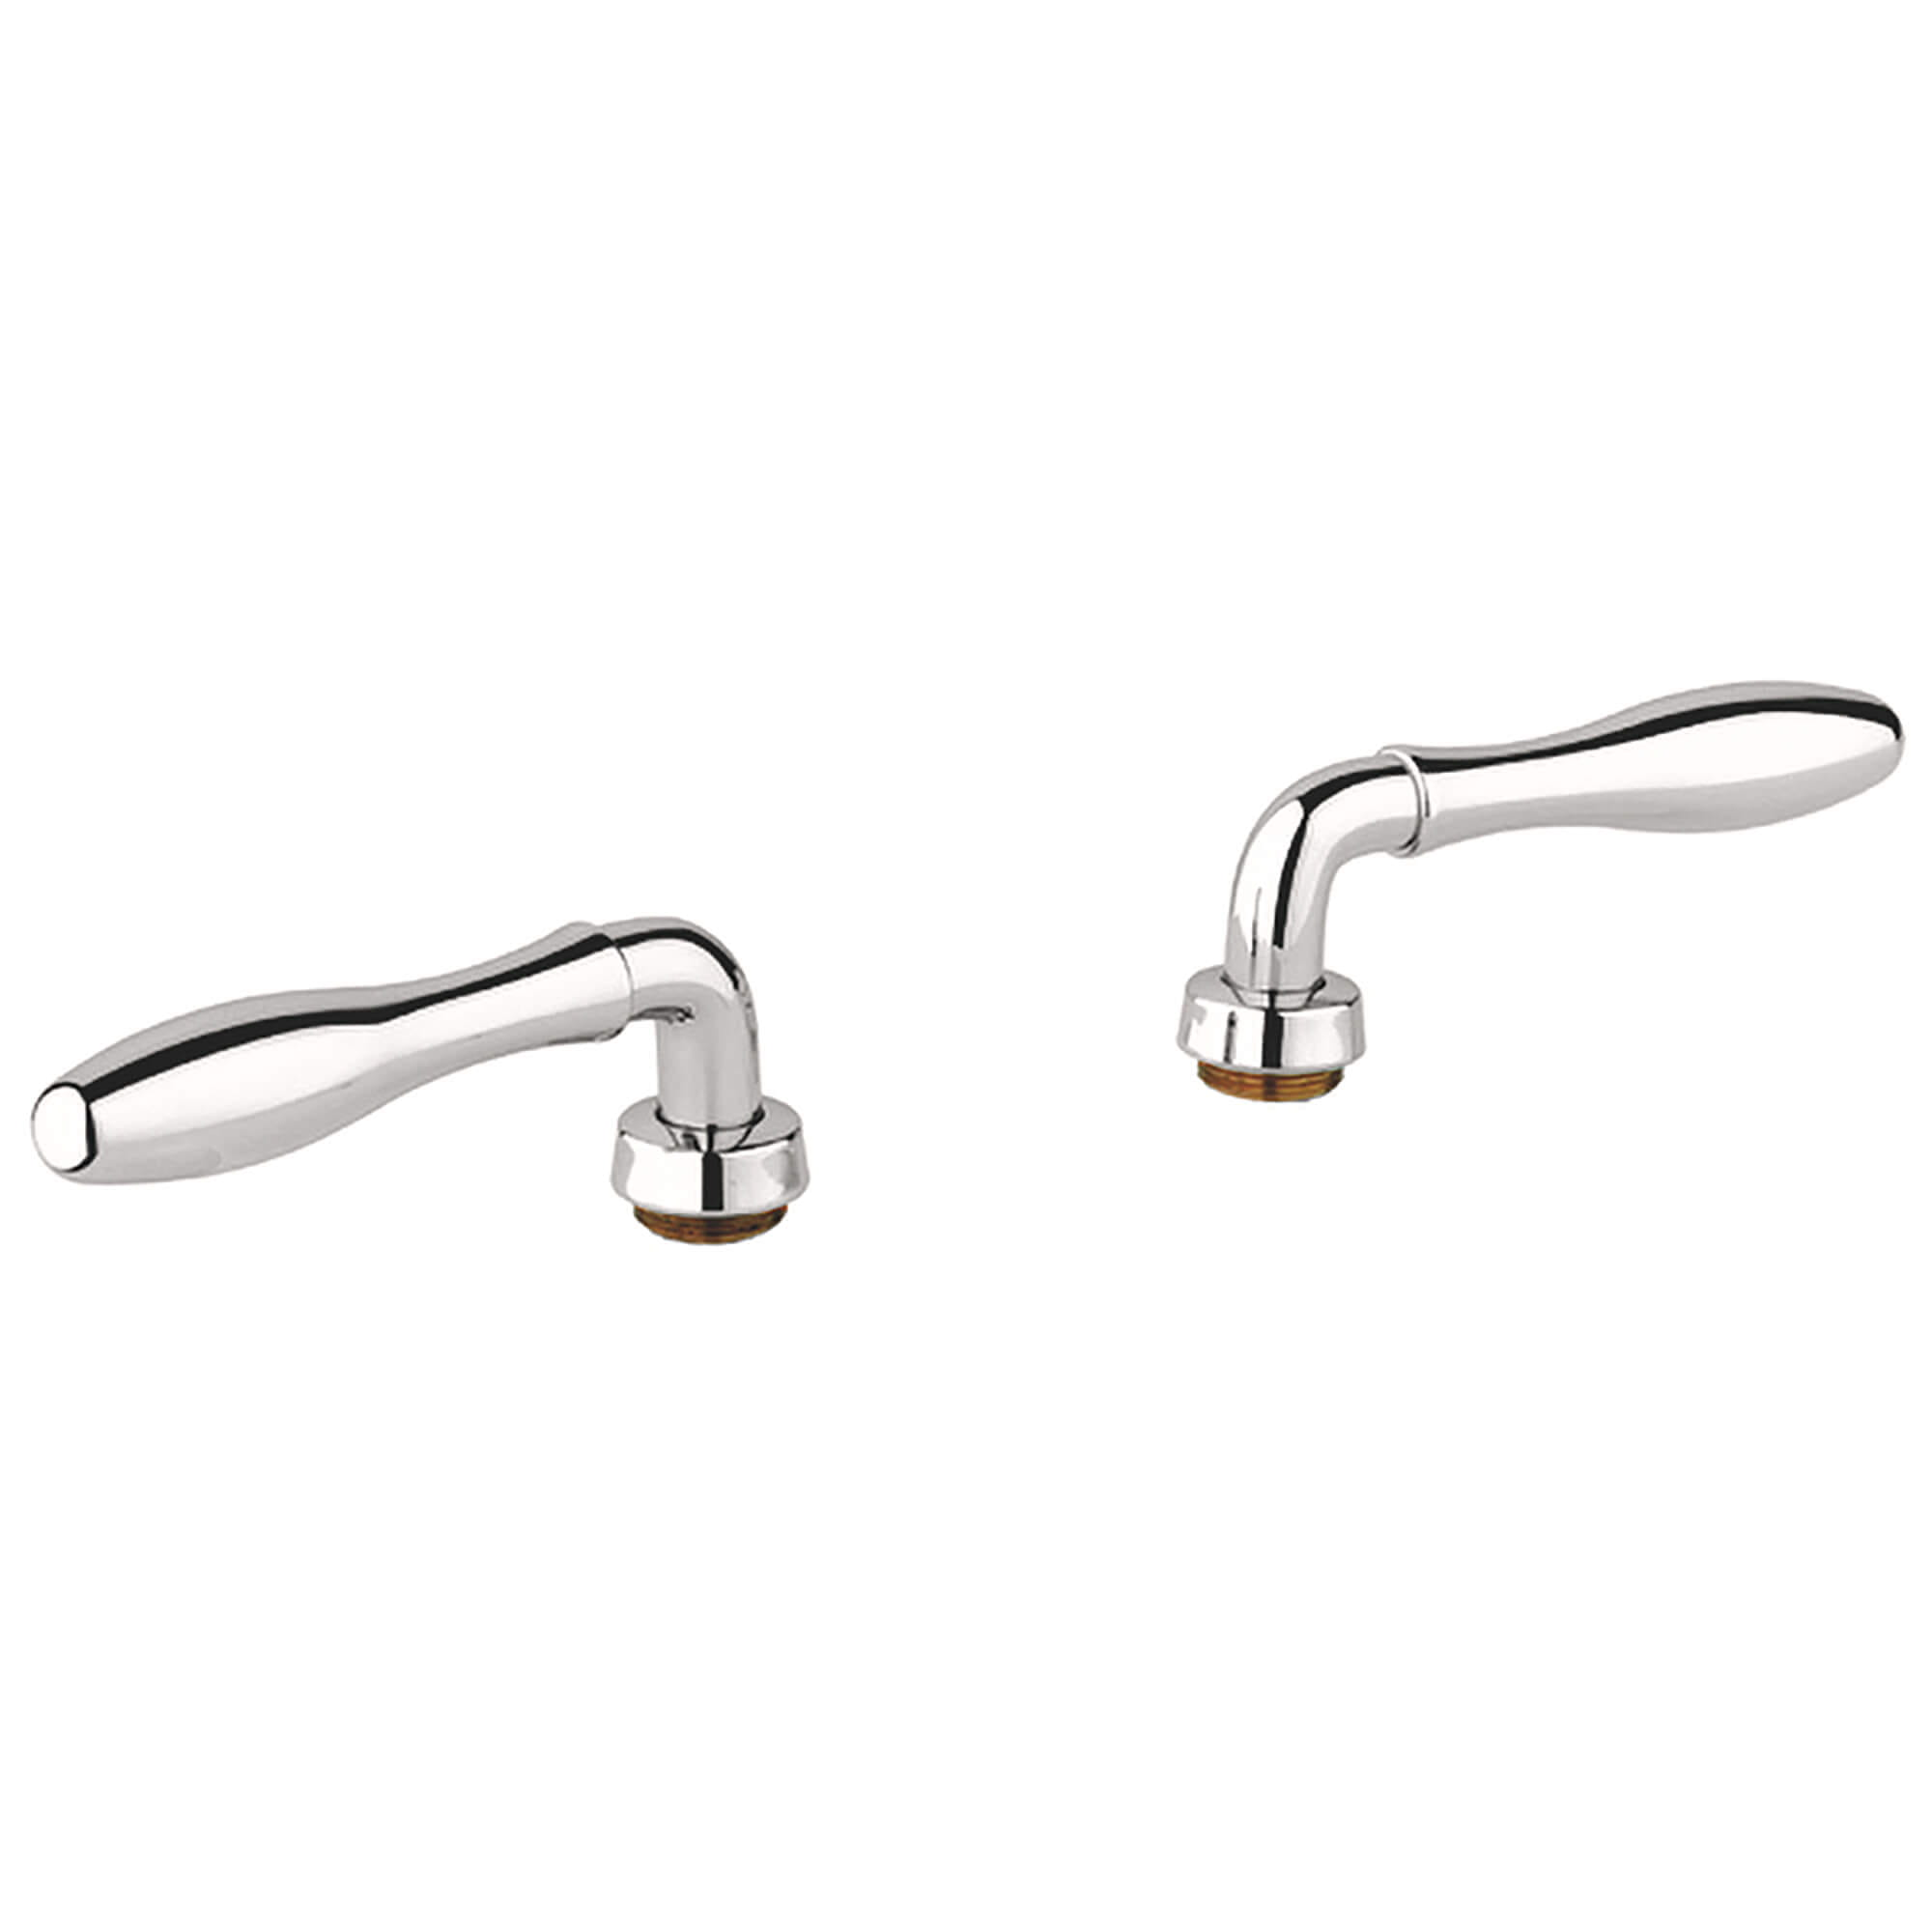 Lever Handles Pair GROHE POLISHED NICKEL